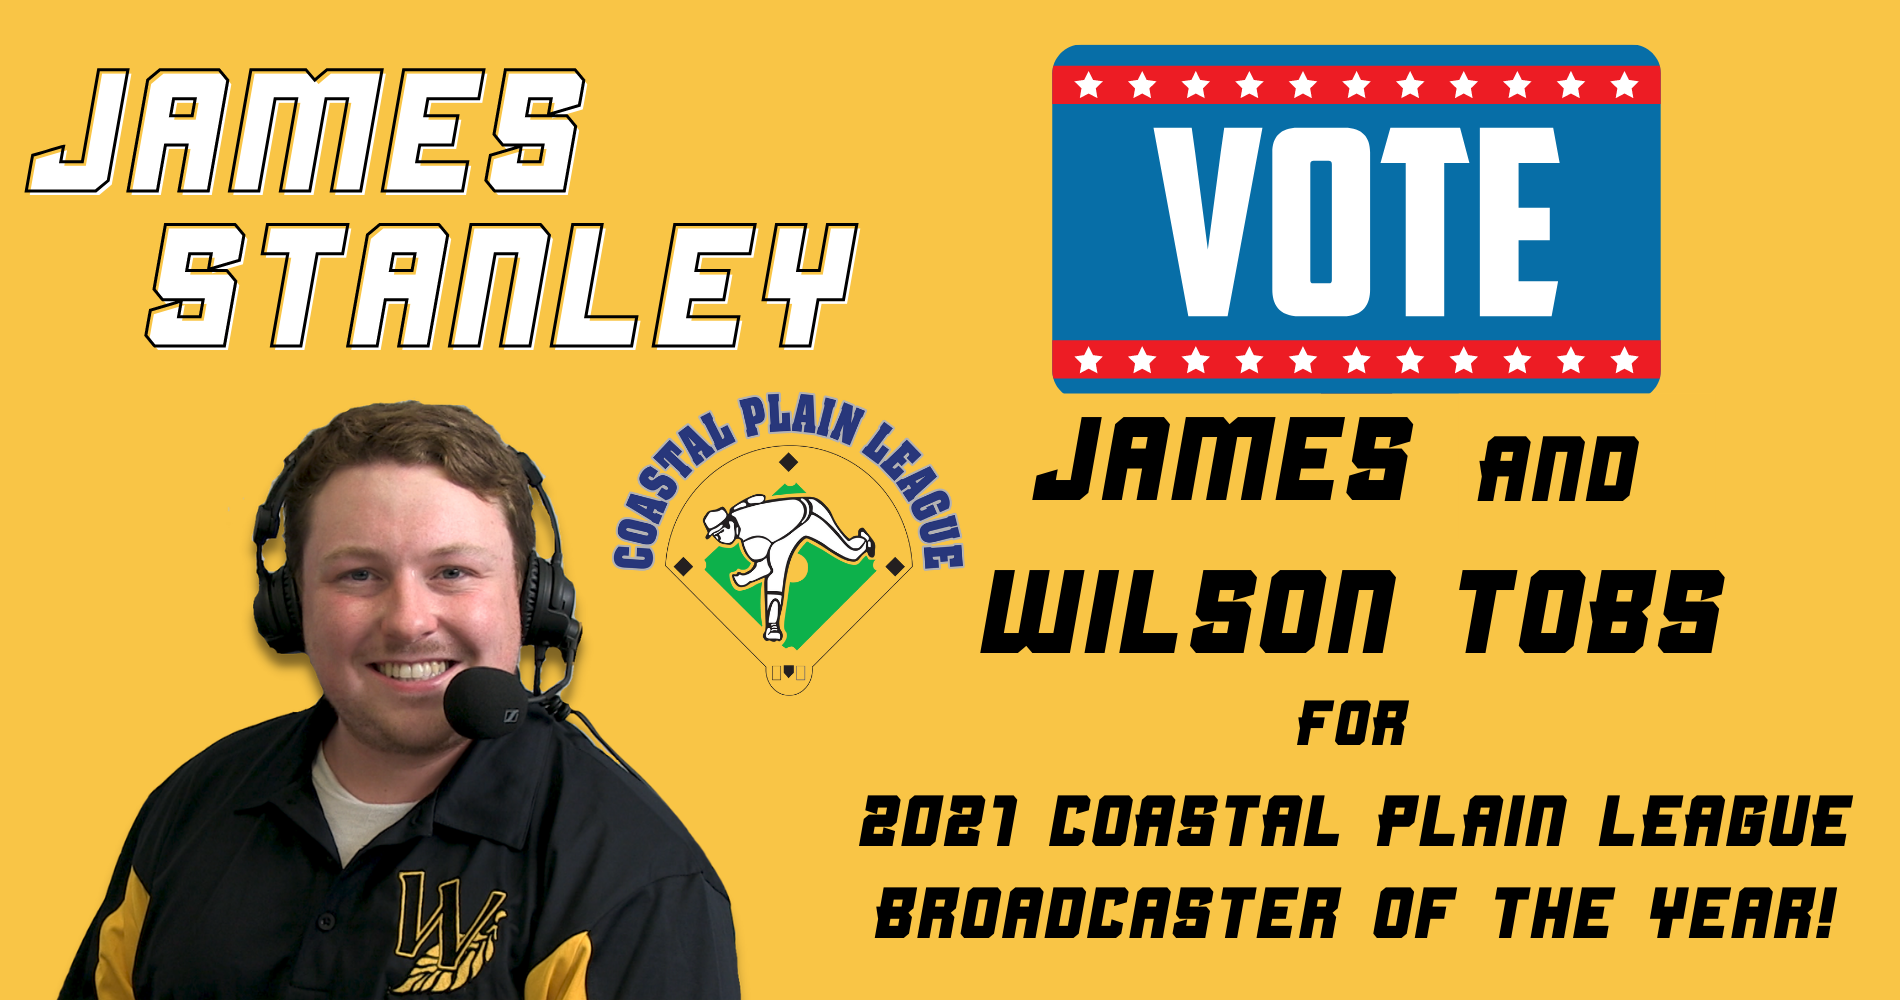 Help Tobs Win CPL Broadcaster of the Year